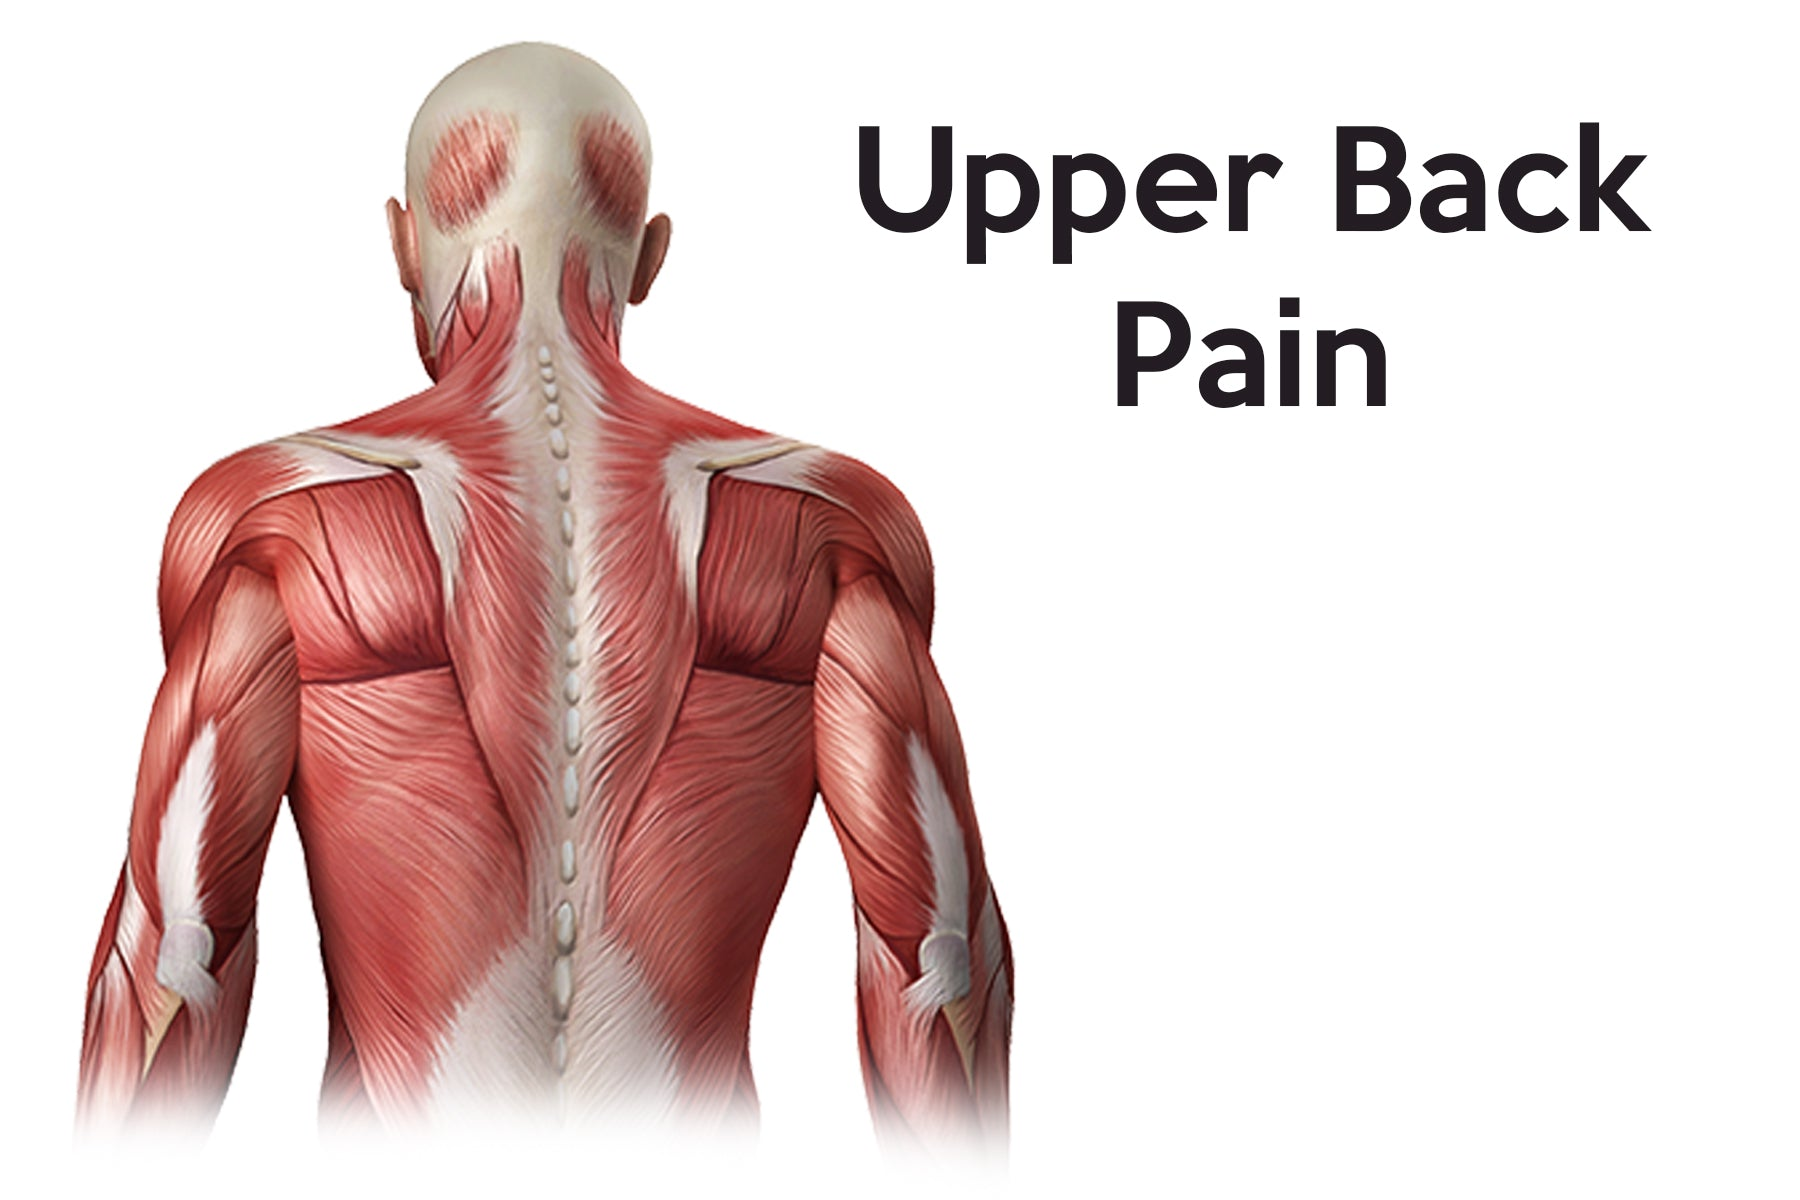 There are many treatment options for upper back pain, use this chart to determine the recovery process you need